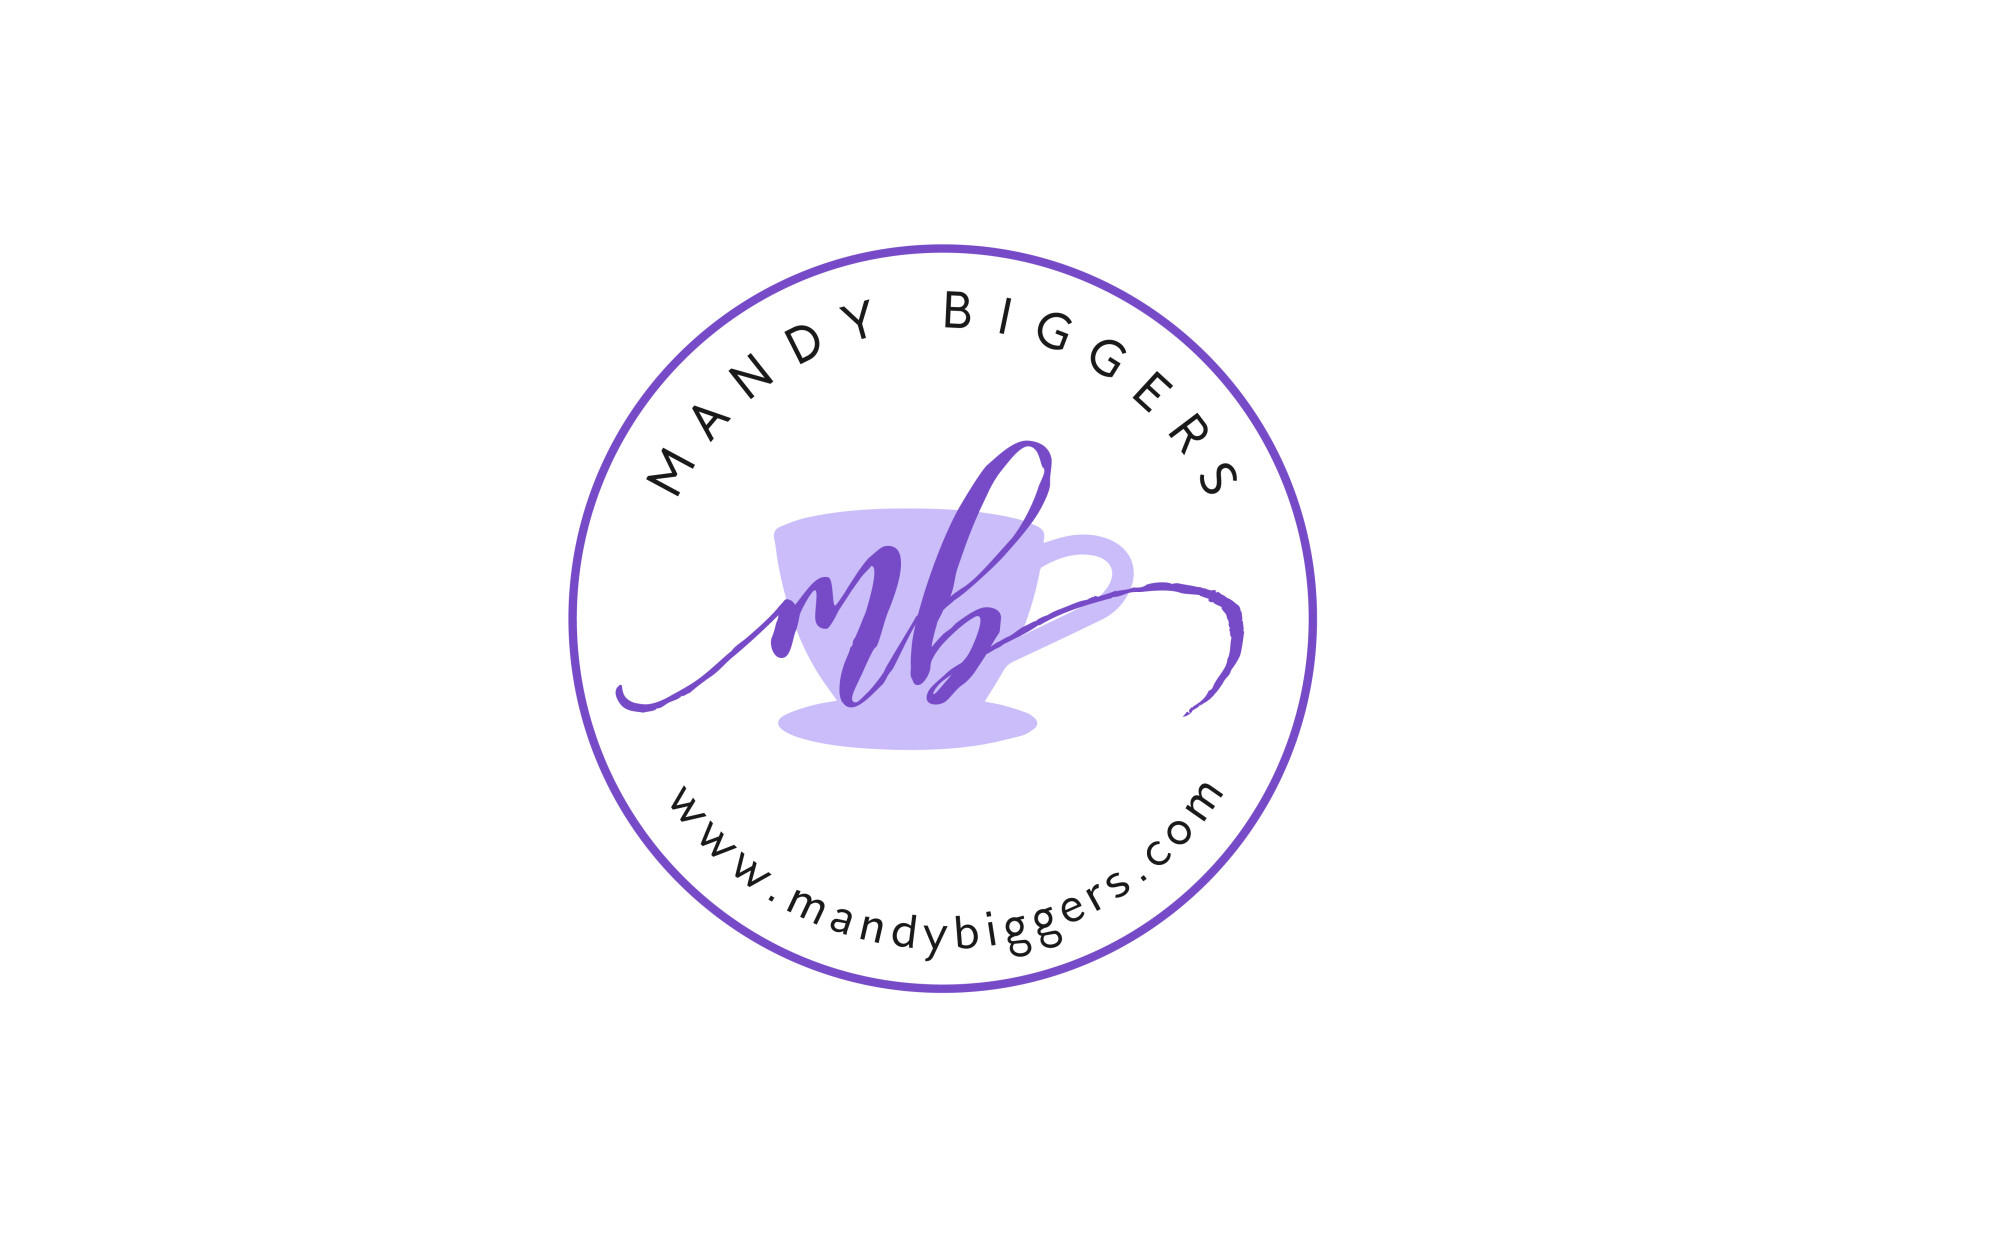 Mandy Biggers